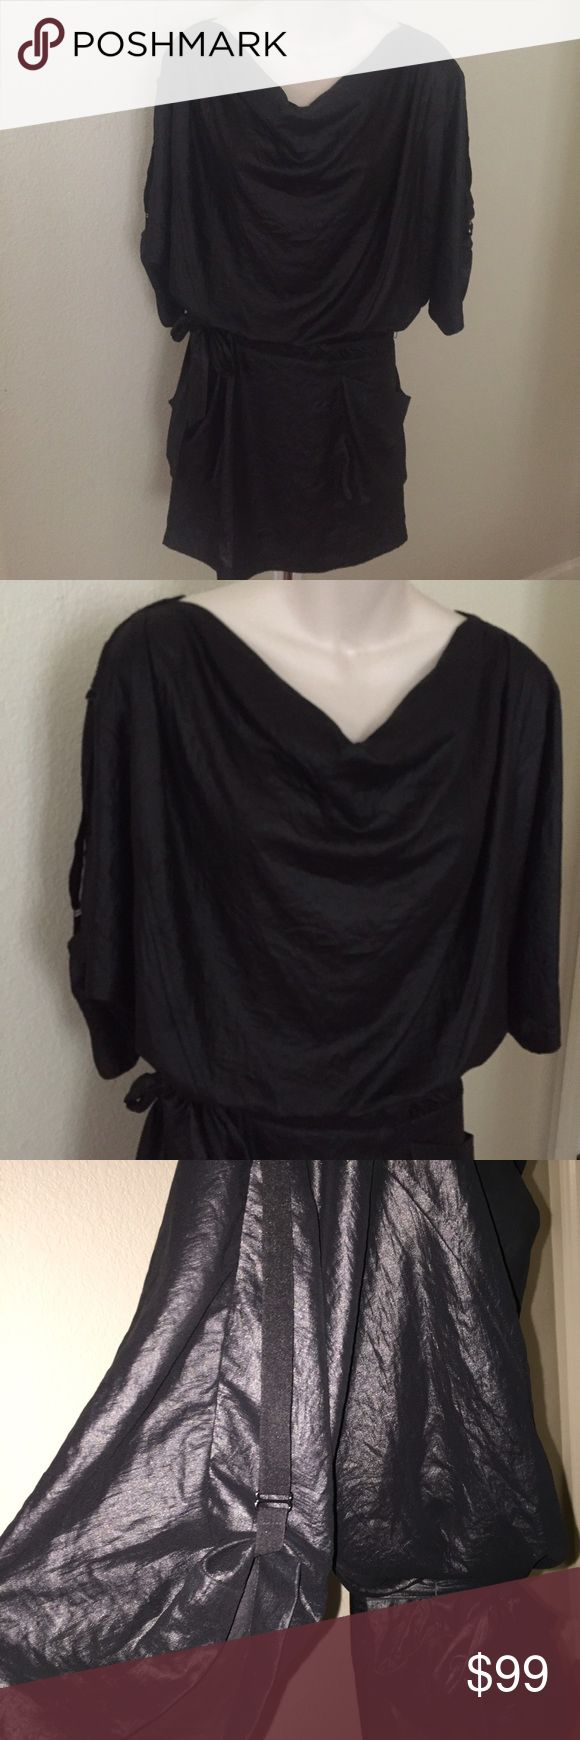 Bcbgmaxazria Metallic Draped Mini Dress Tie Waist This is a gorgeous Bcbgmaxazria Metallic mini dress. Size extra small but will fit a small. Arms have sleeve adjustable strap detail. Bottom half is lined. Pullover dress and has 2 large pockets in the front. BCBGMaxAzria Dresses Mini